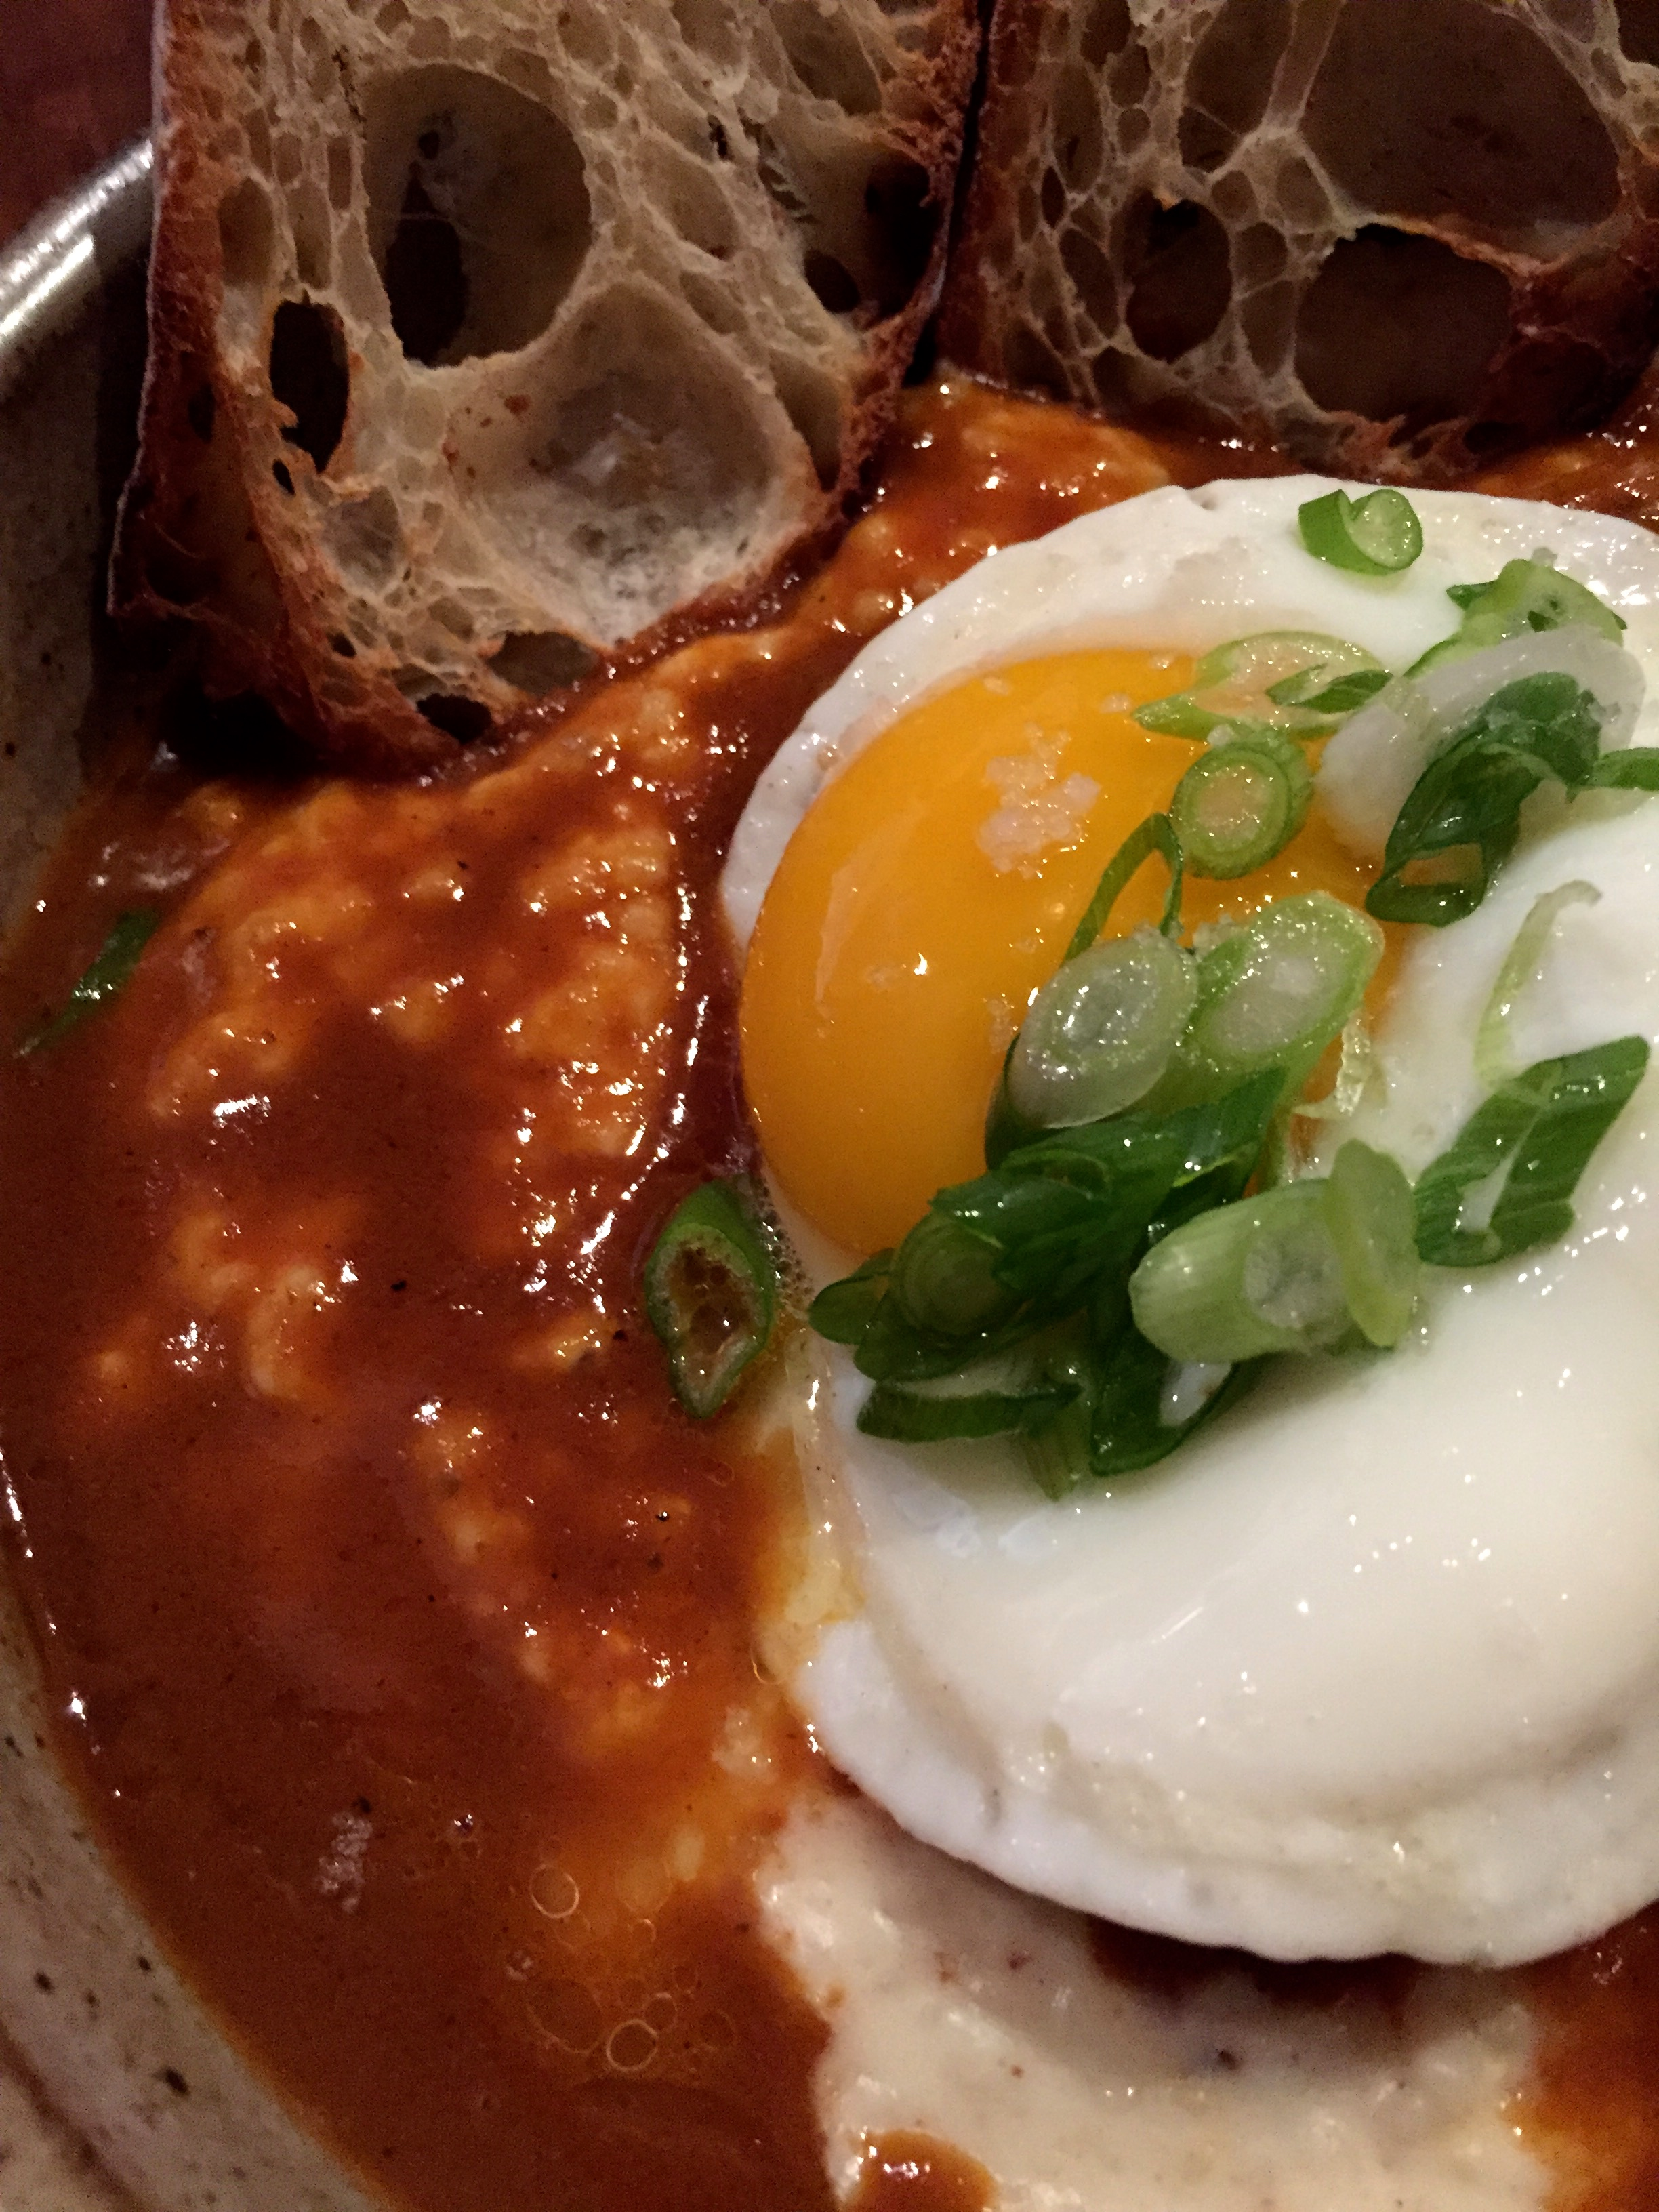 Shrimp and cheddar grits, chipotle, a fried egg, and toast.